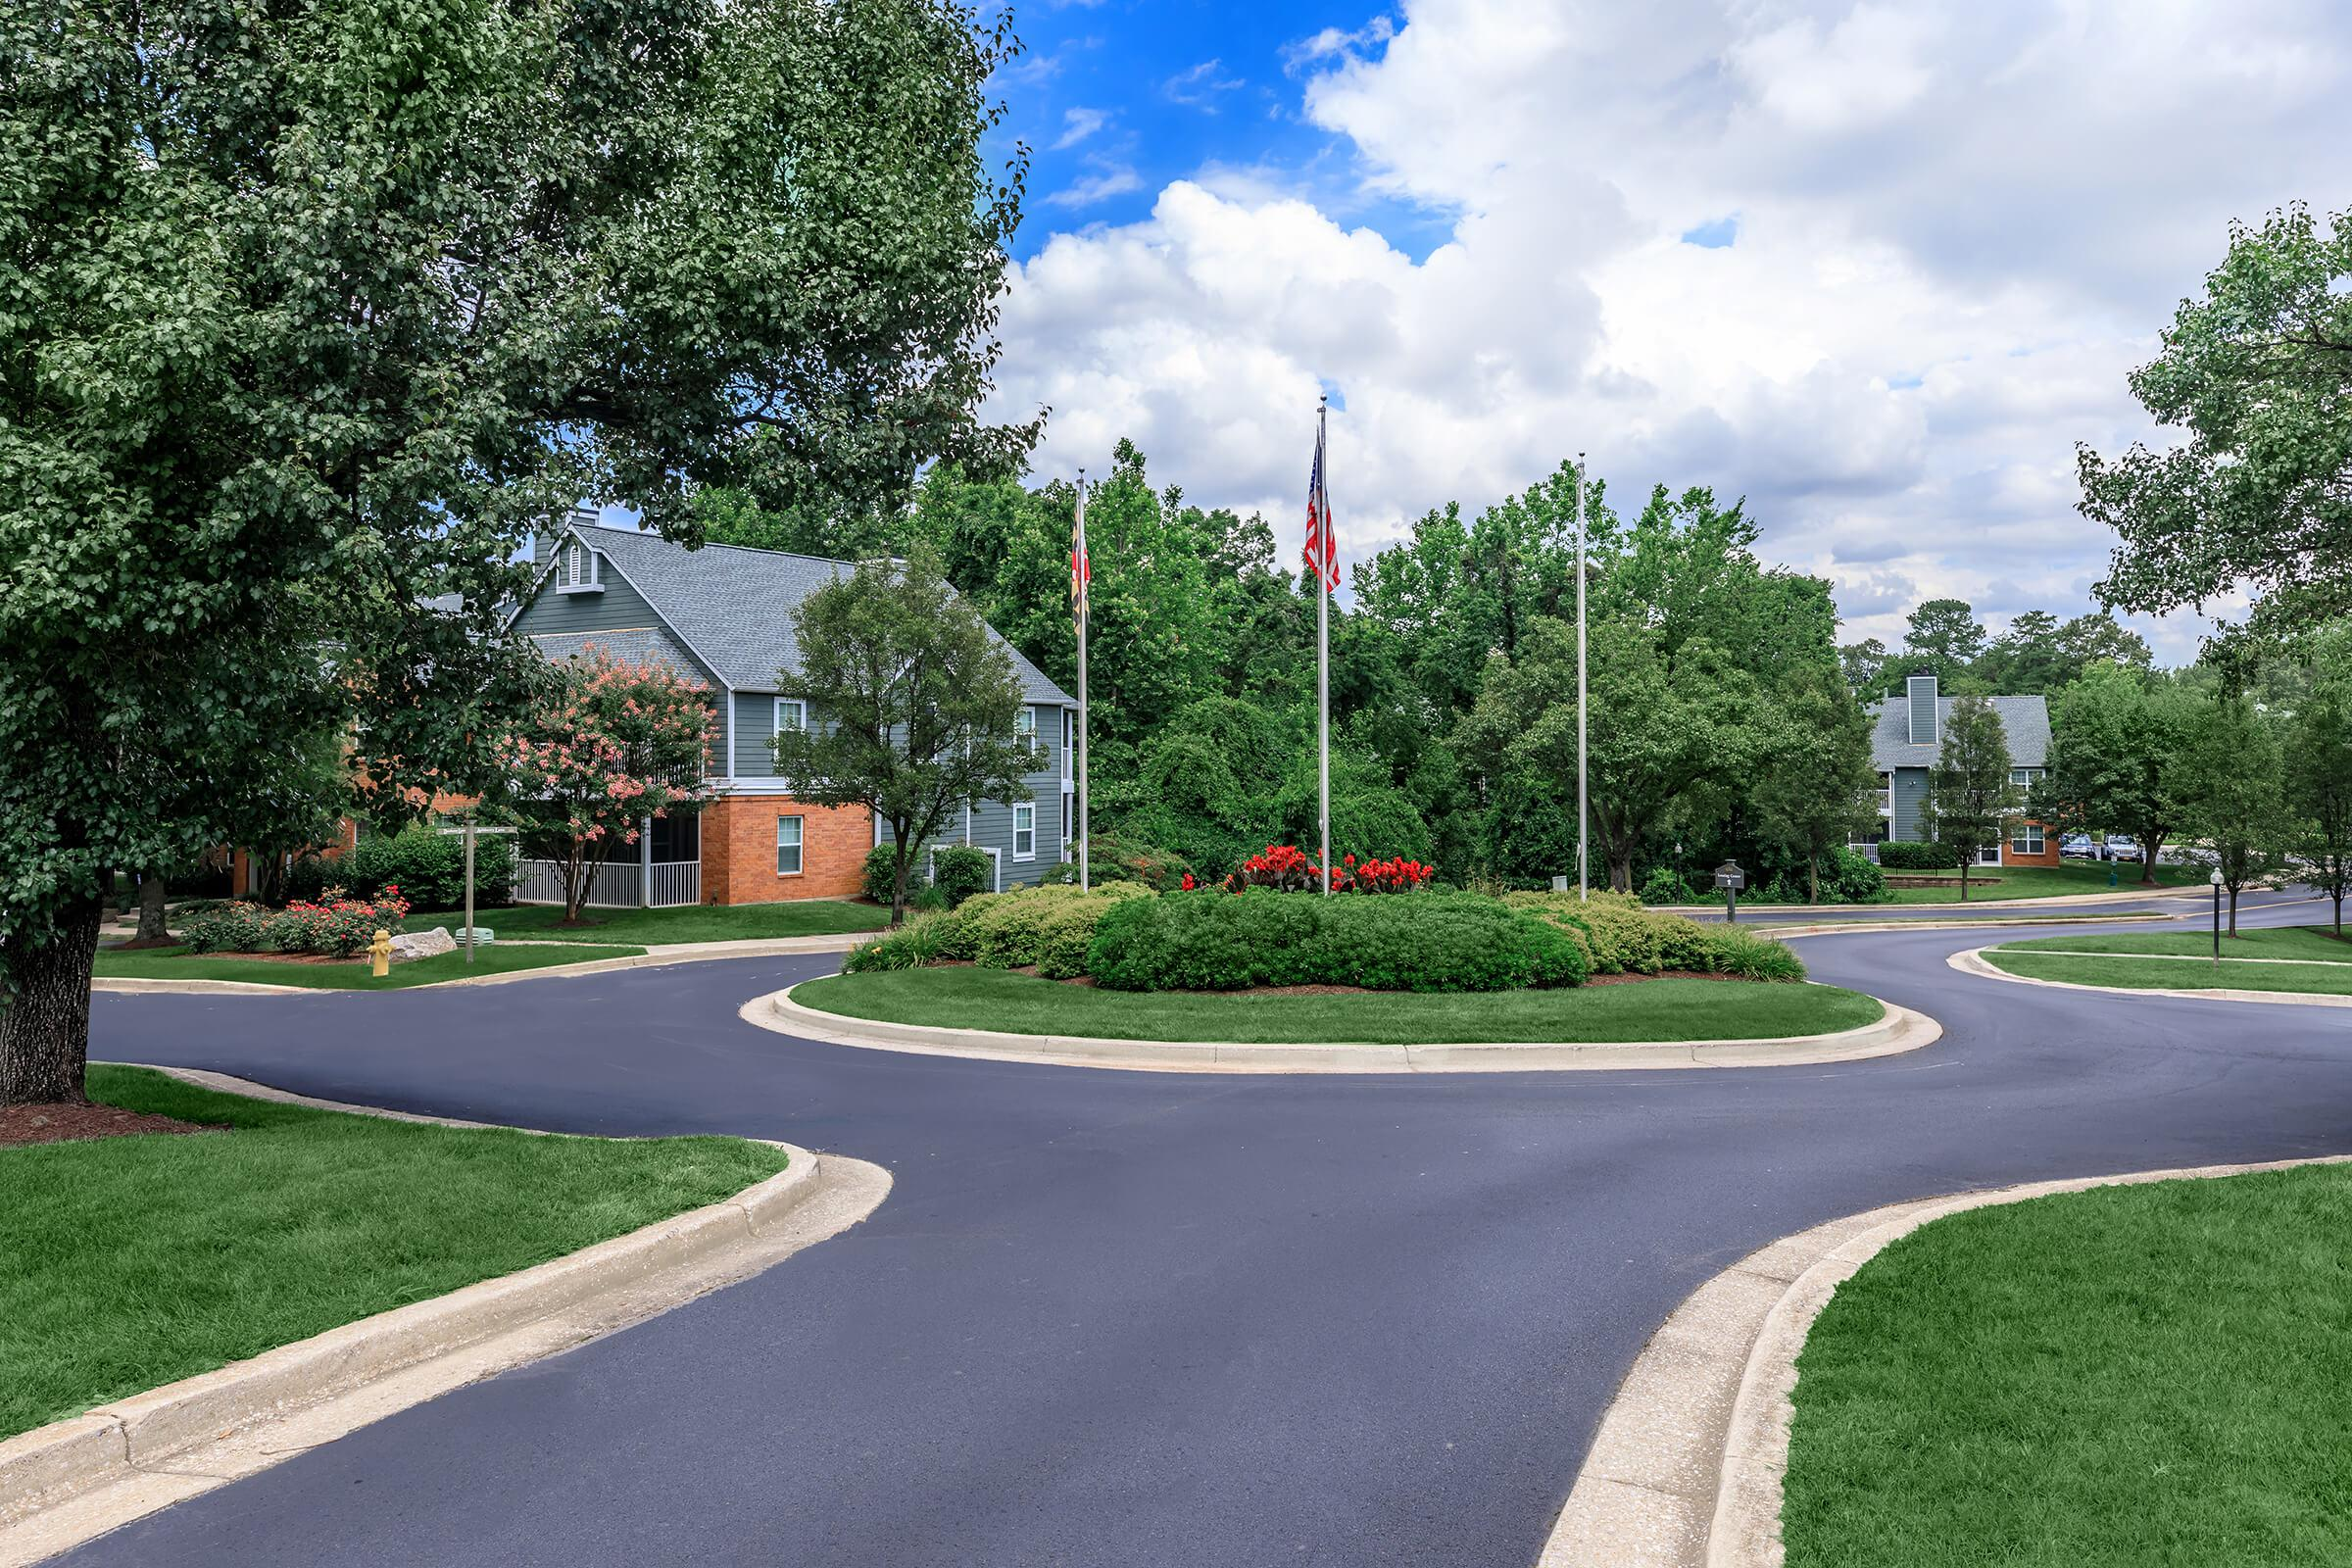 Landscaping at The Ashberry in Pasadena MD